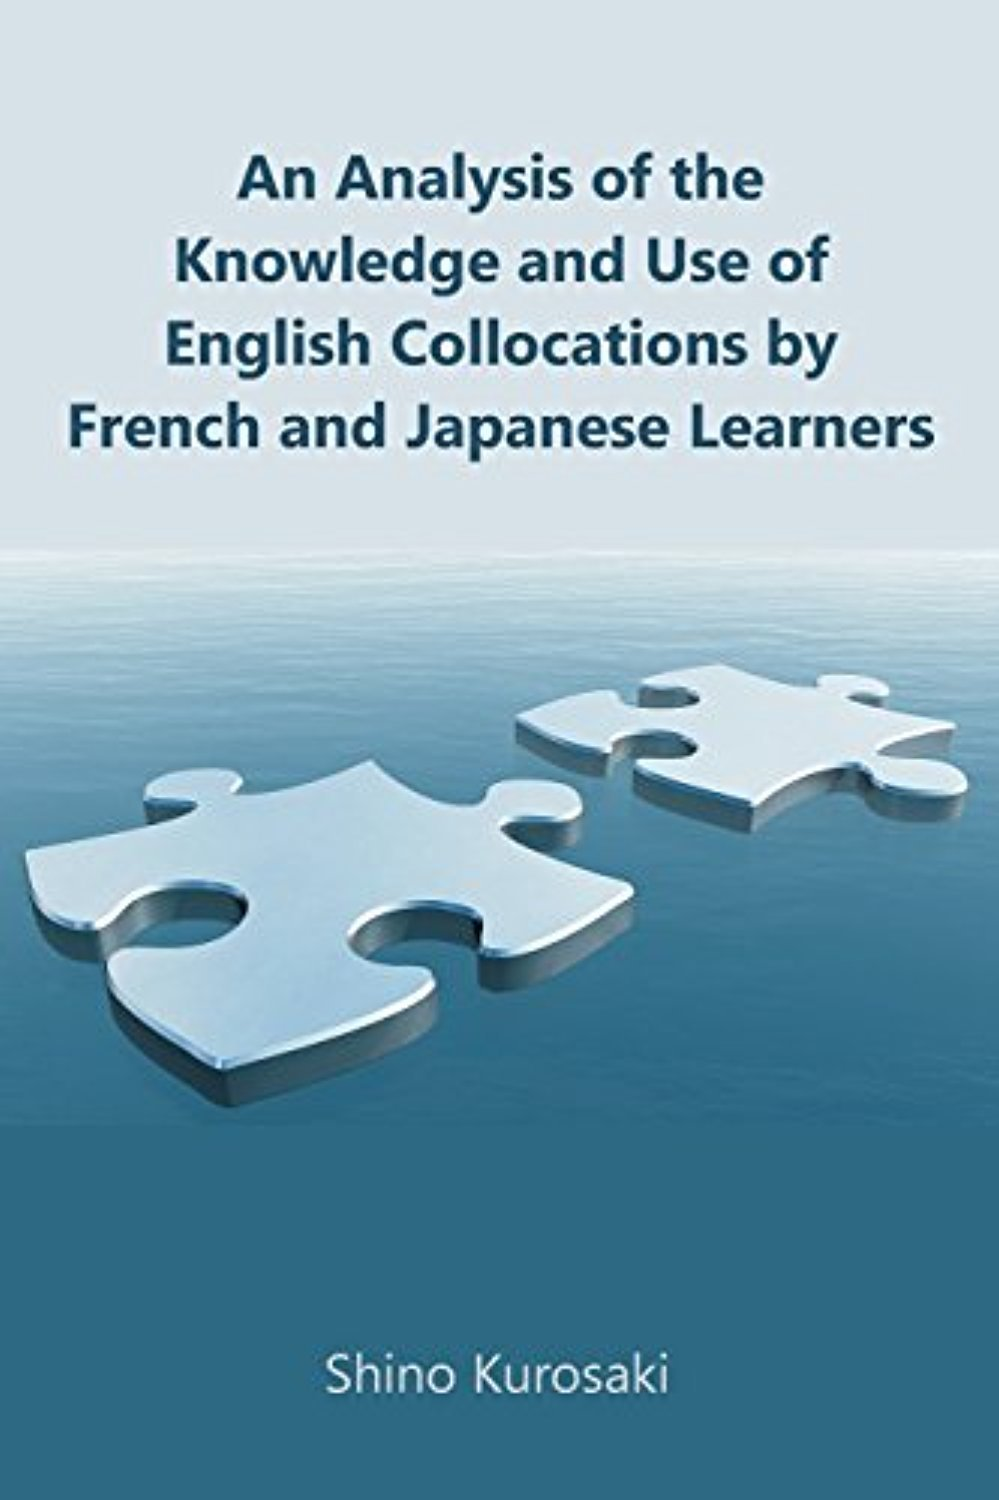 An Analysis of the Knowledge and Use of English Collocations by French and Japanese Learners